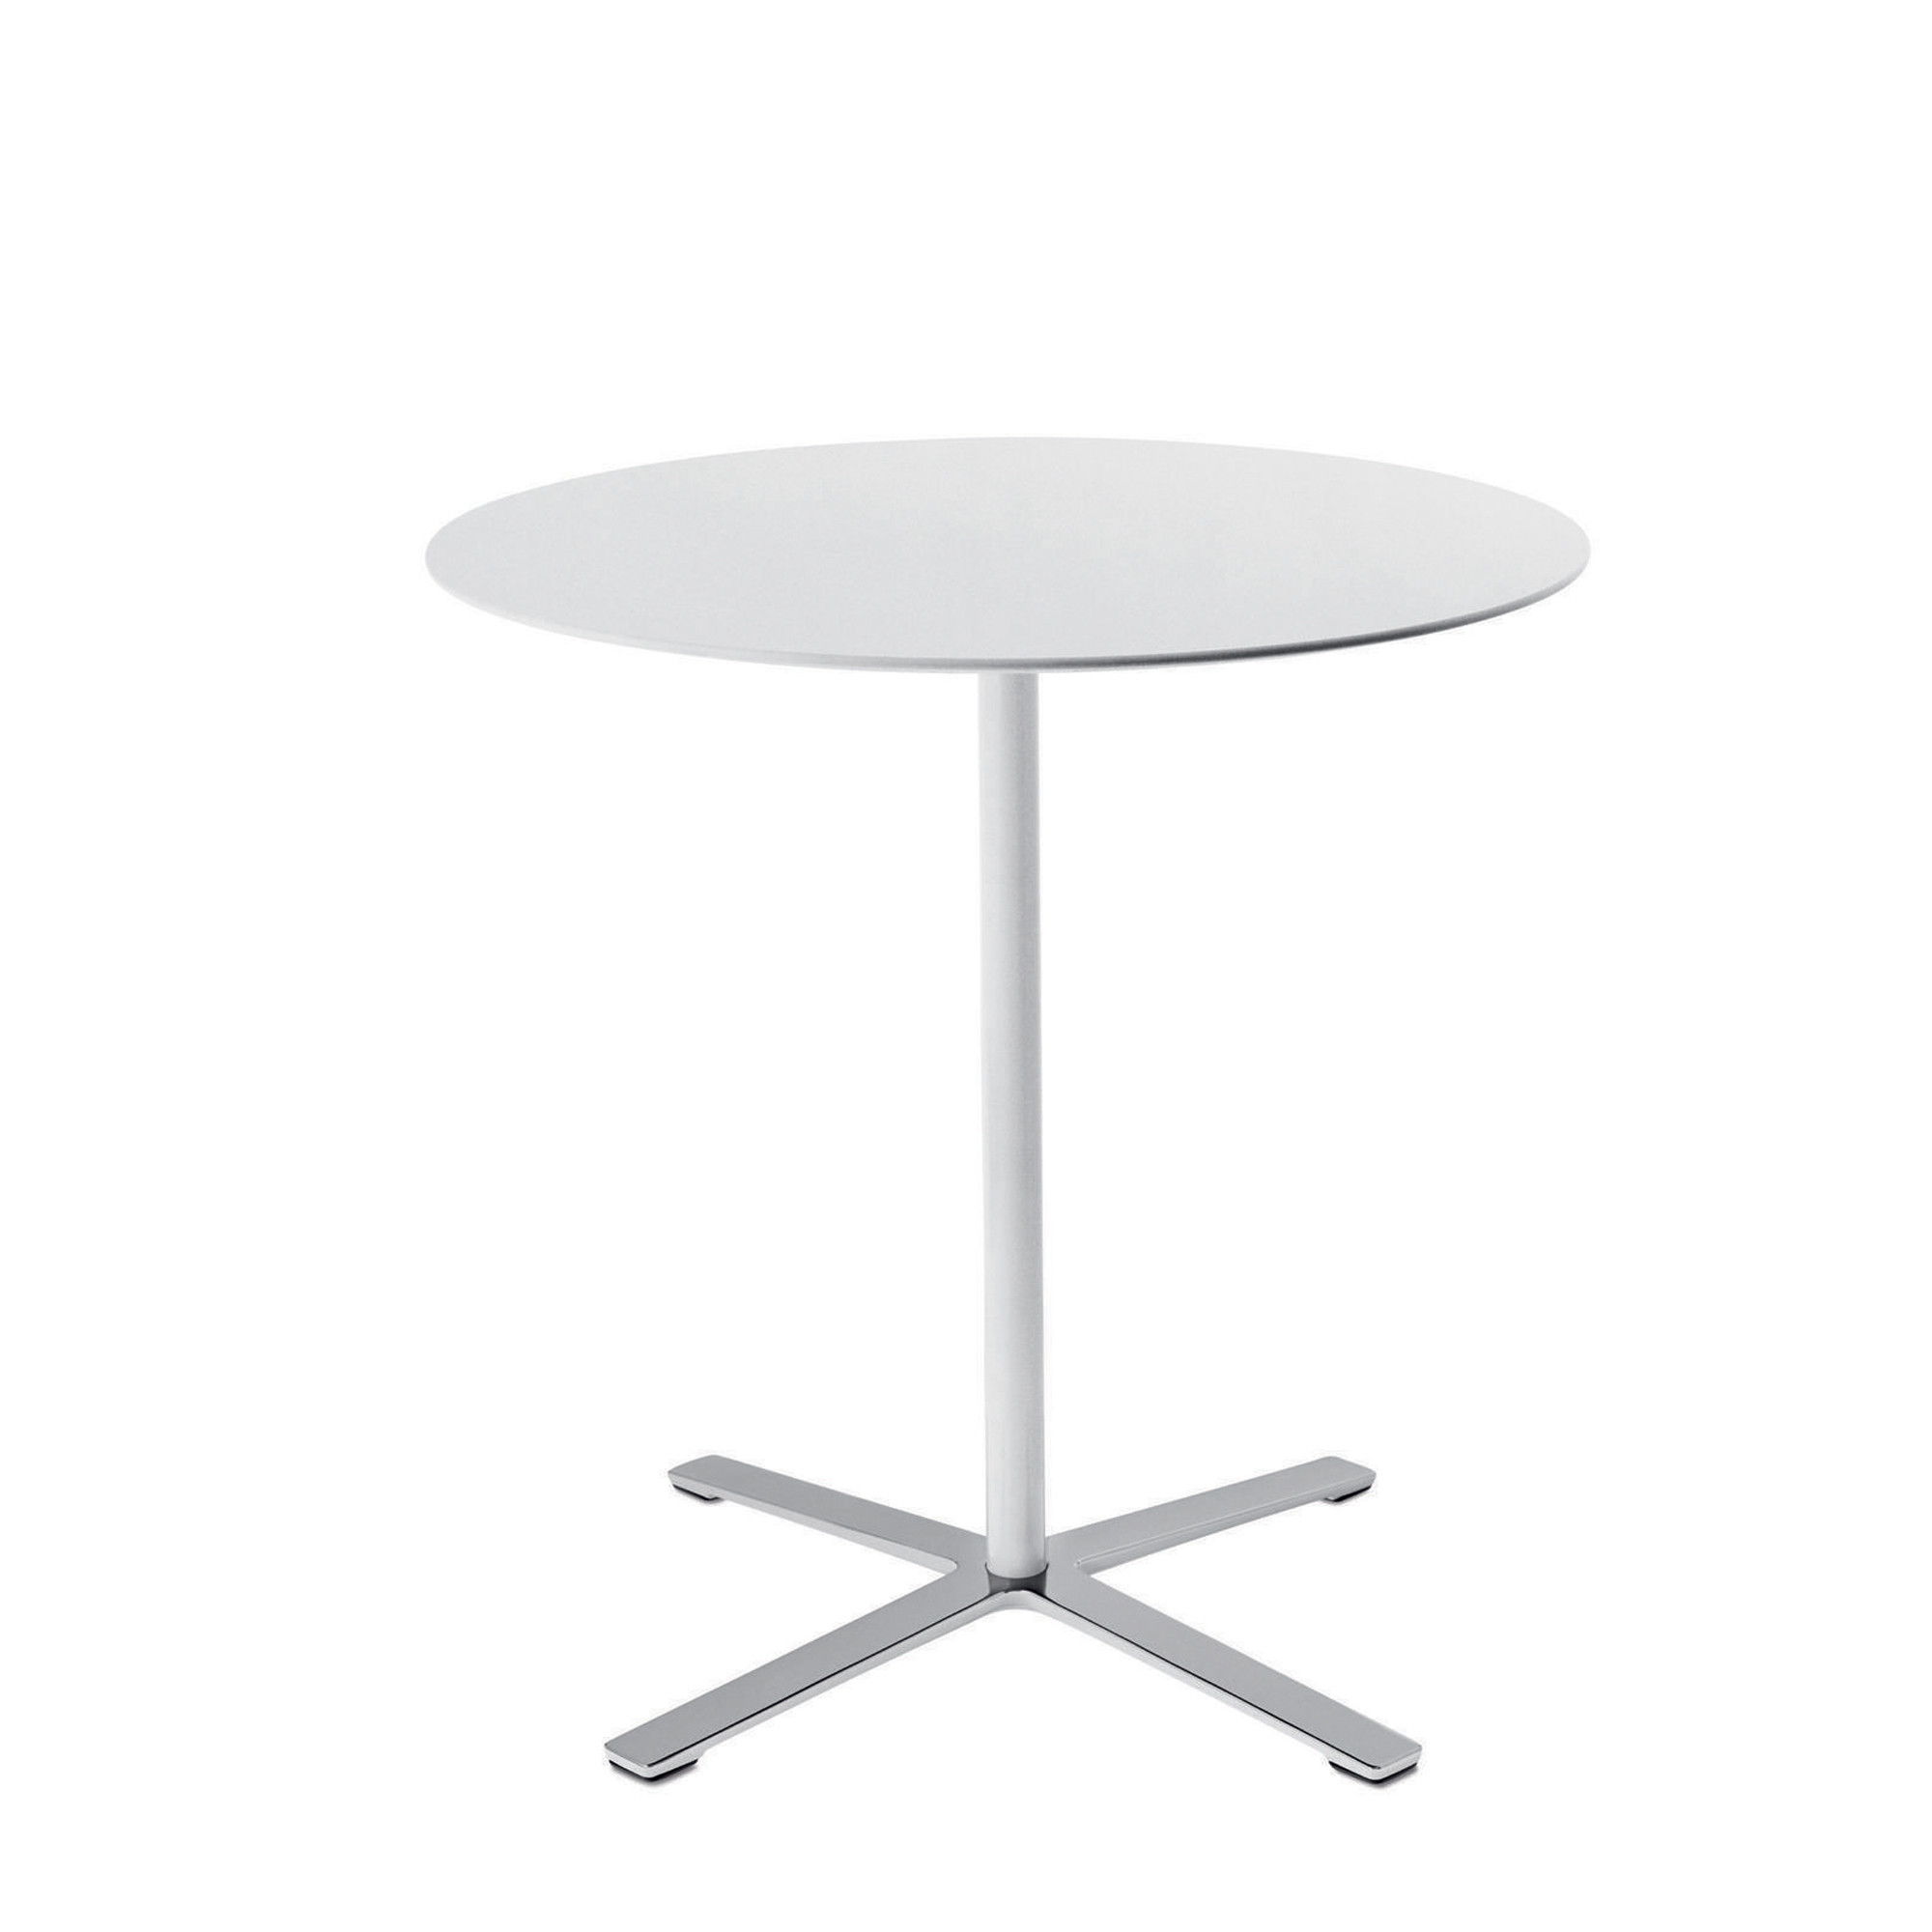 Aline Circular Pedestal Table